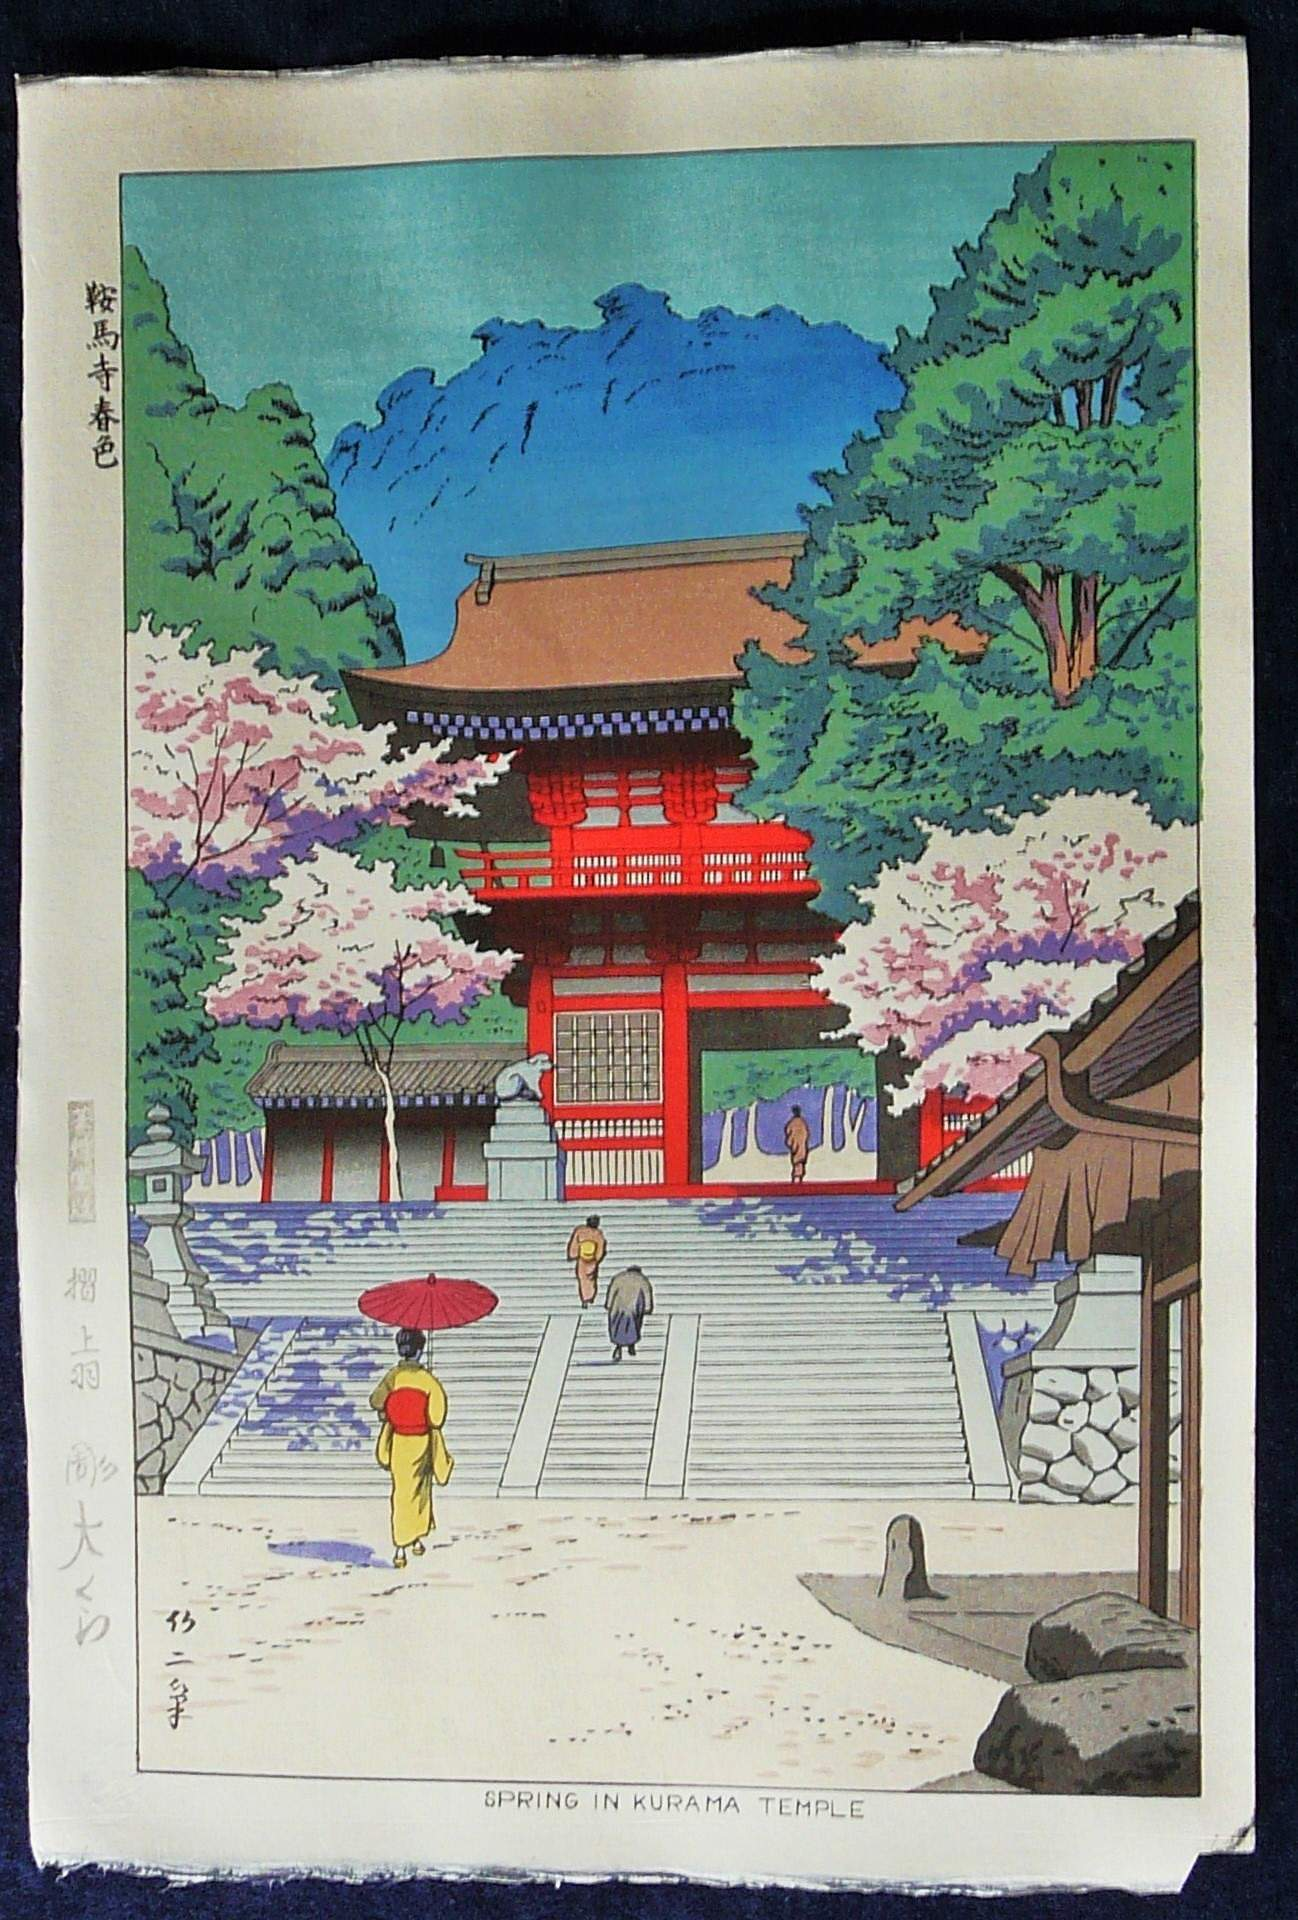 Takeji Asano: #P3708 SPRING IN KURAMA TEMPLE